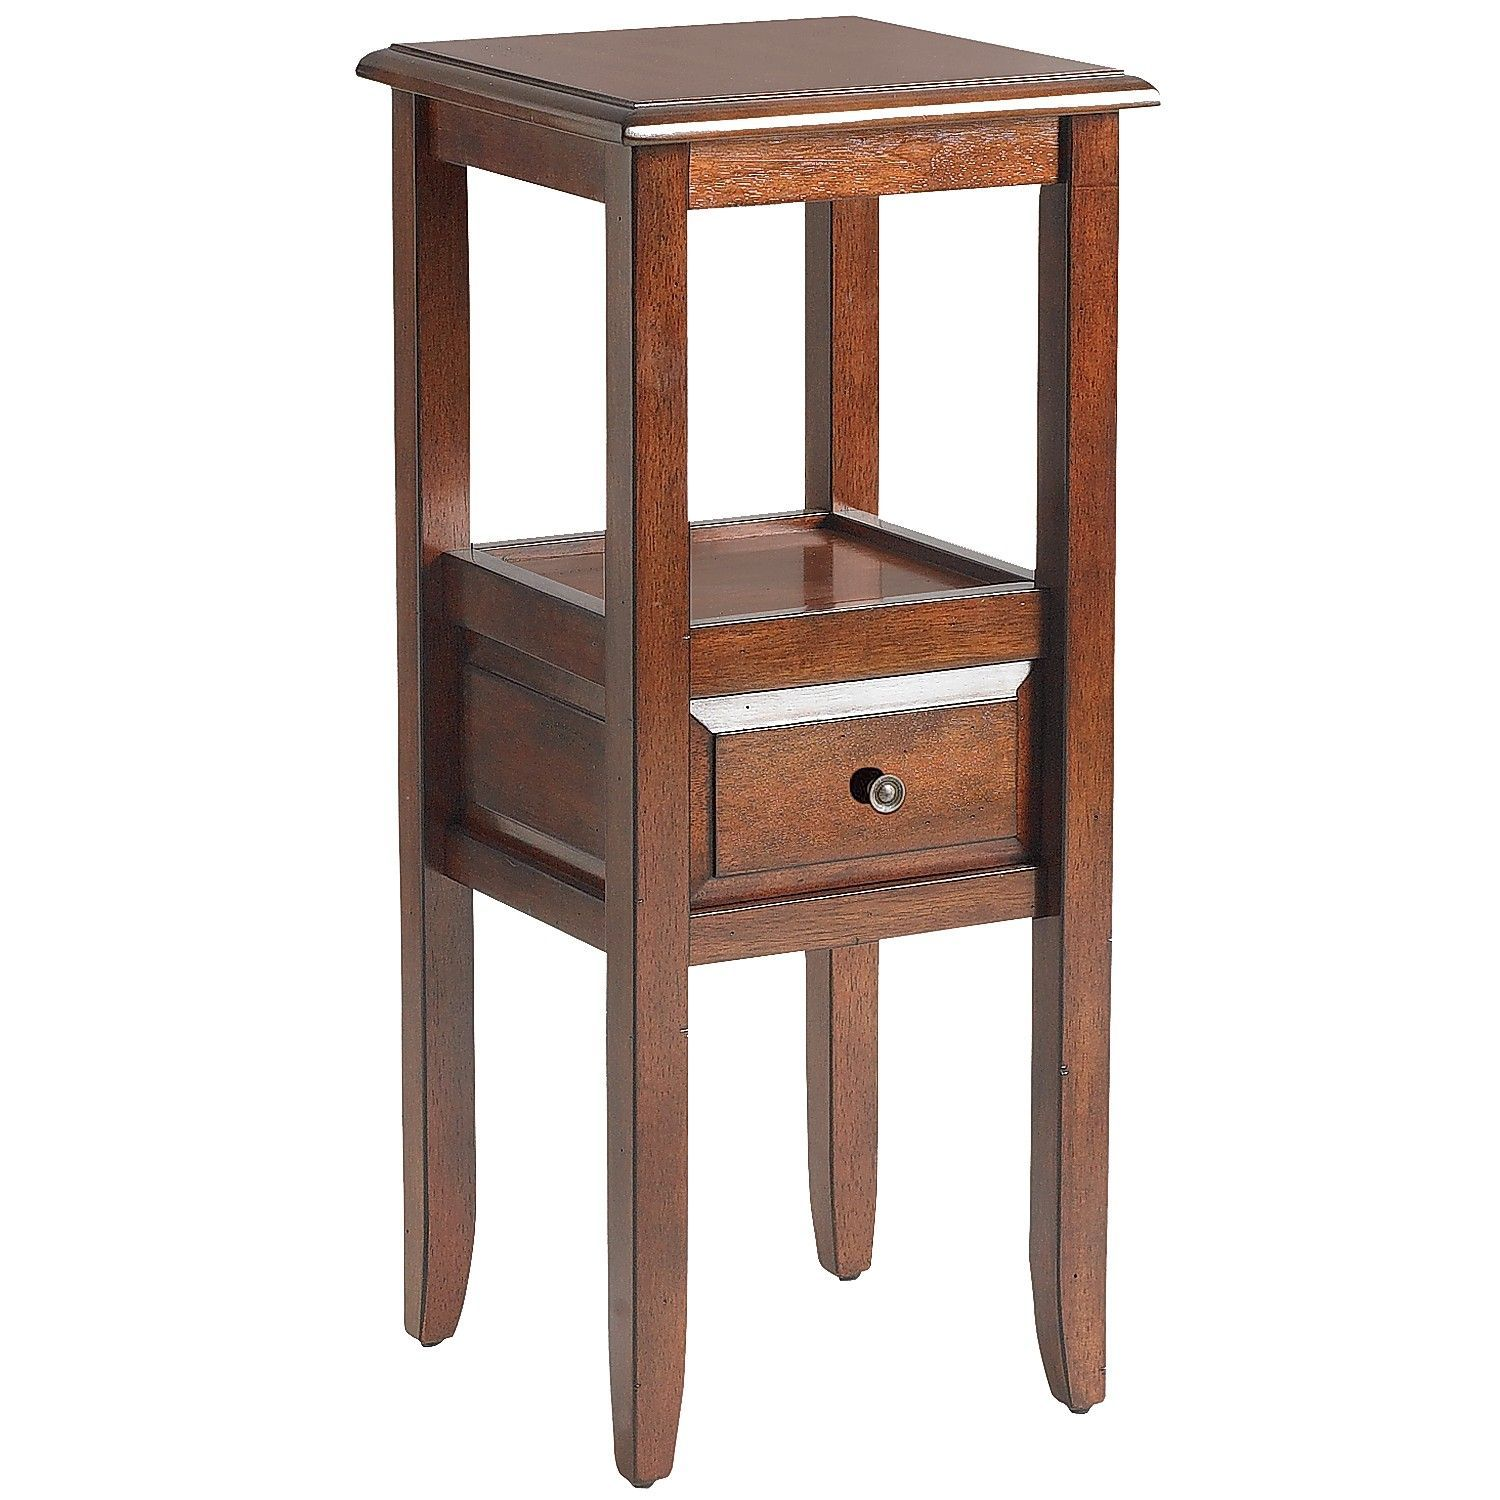 anywhere tuscan brown end table with knobs accent tables keru hardwood pottery barn rain drum wicker garden chairs contemporary marble dining living room storage rustic wall decor